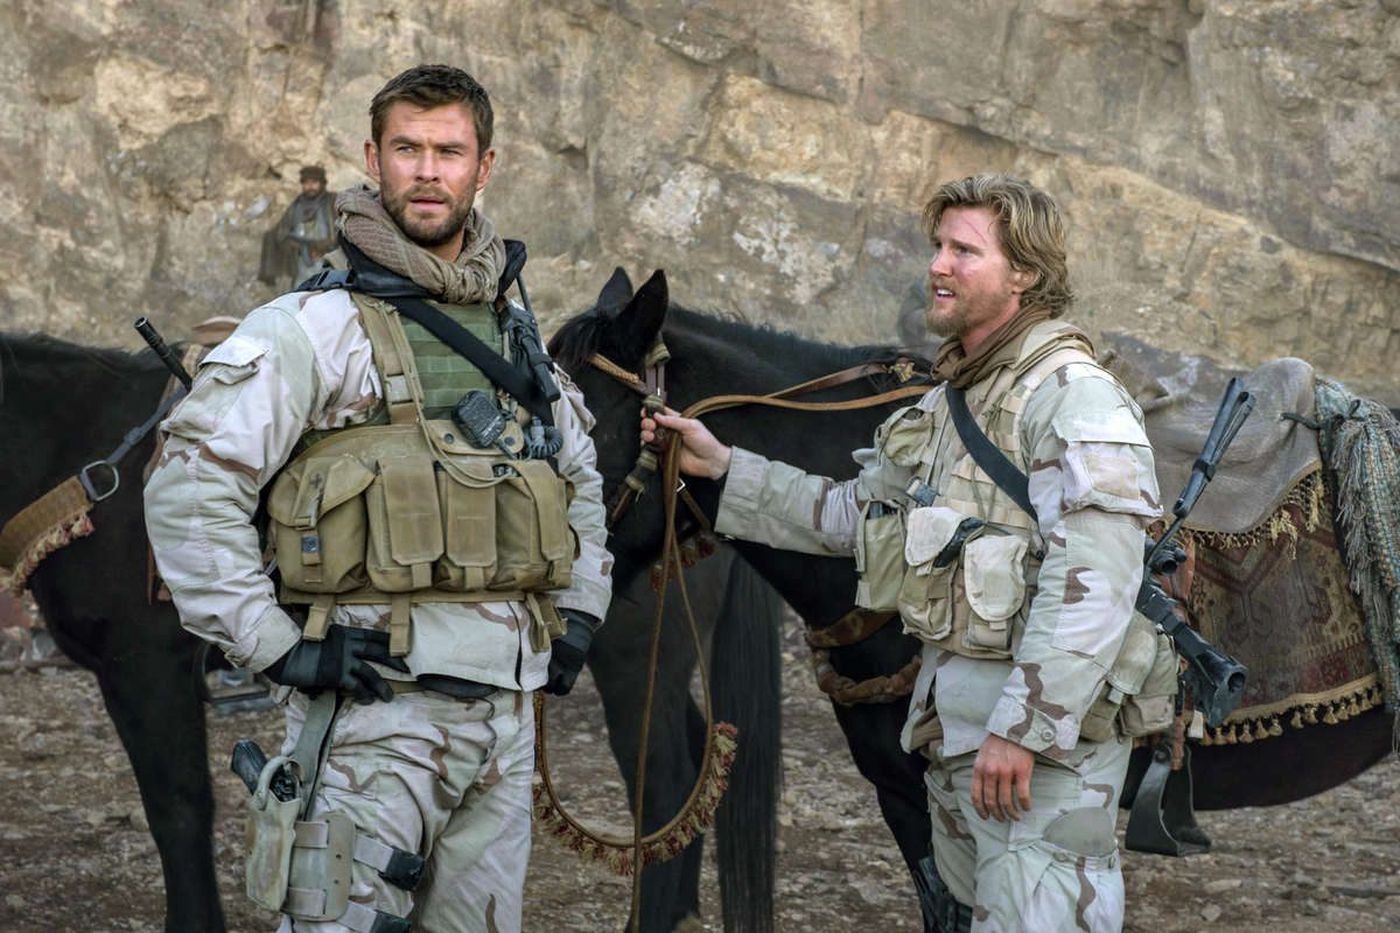 '12 Strong': Chris Hemsworth's Afghan cavalry flick turns out to be a decent yarn